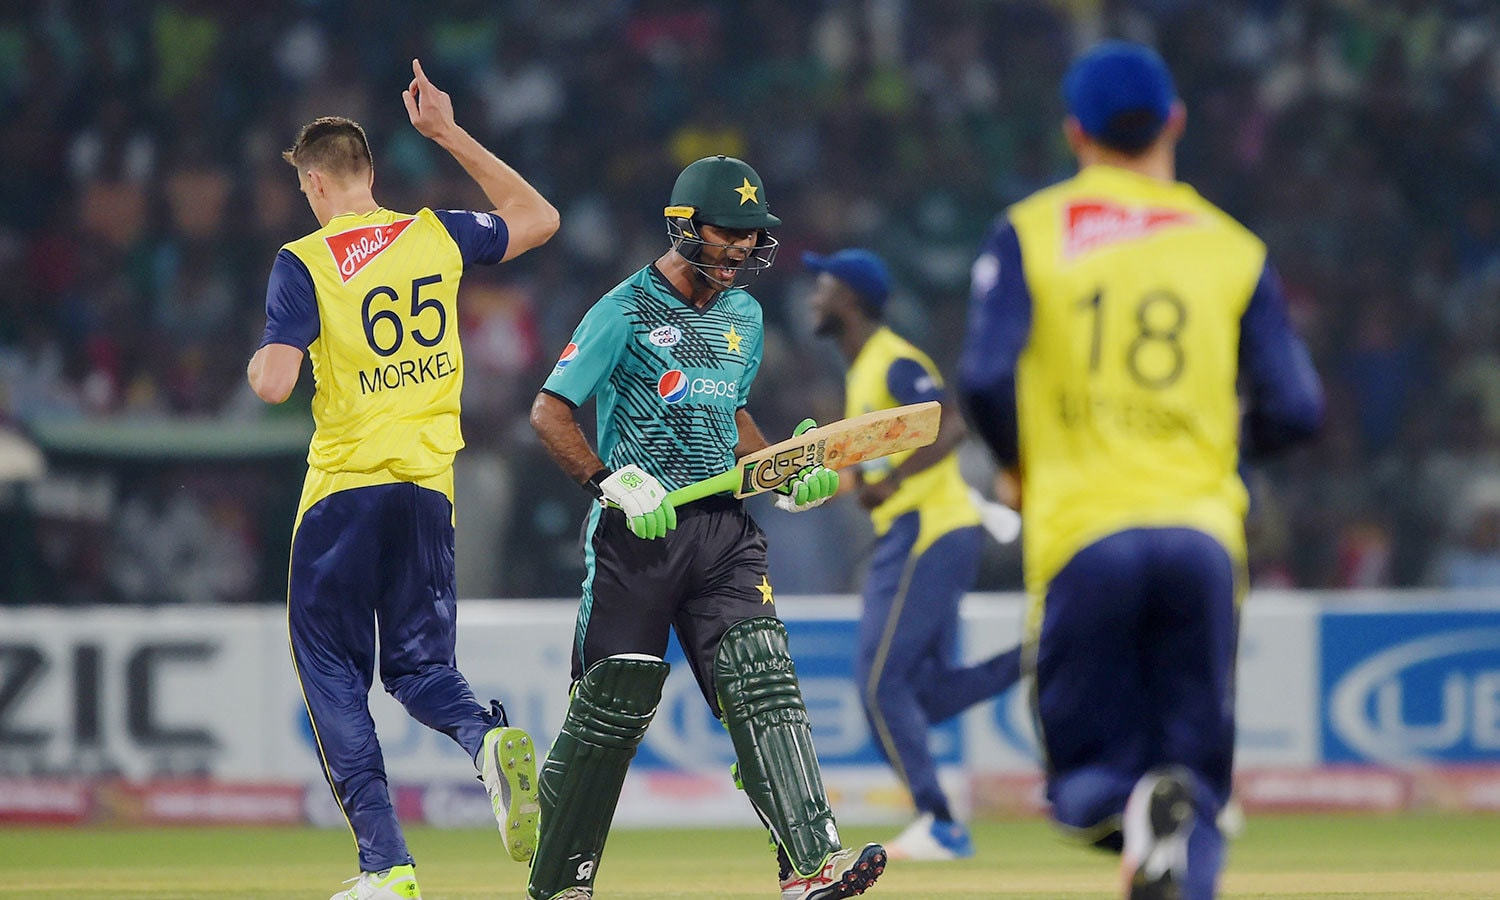 World XI players celebrate as Fakhar Zaman leaves the pitch. — AFP